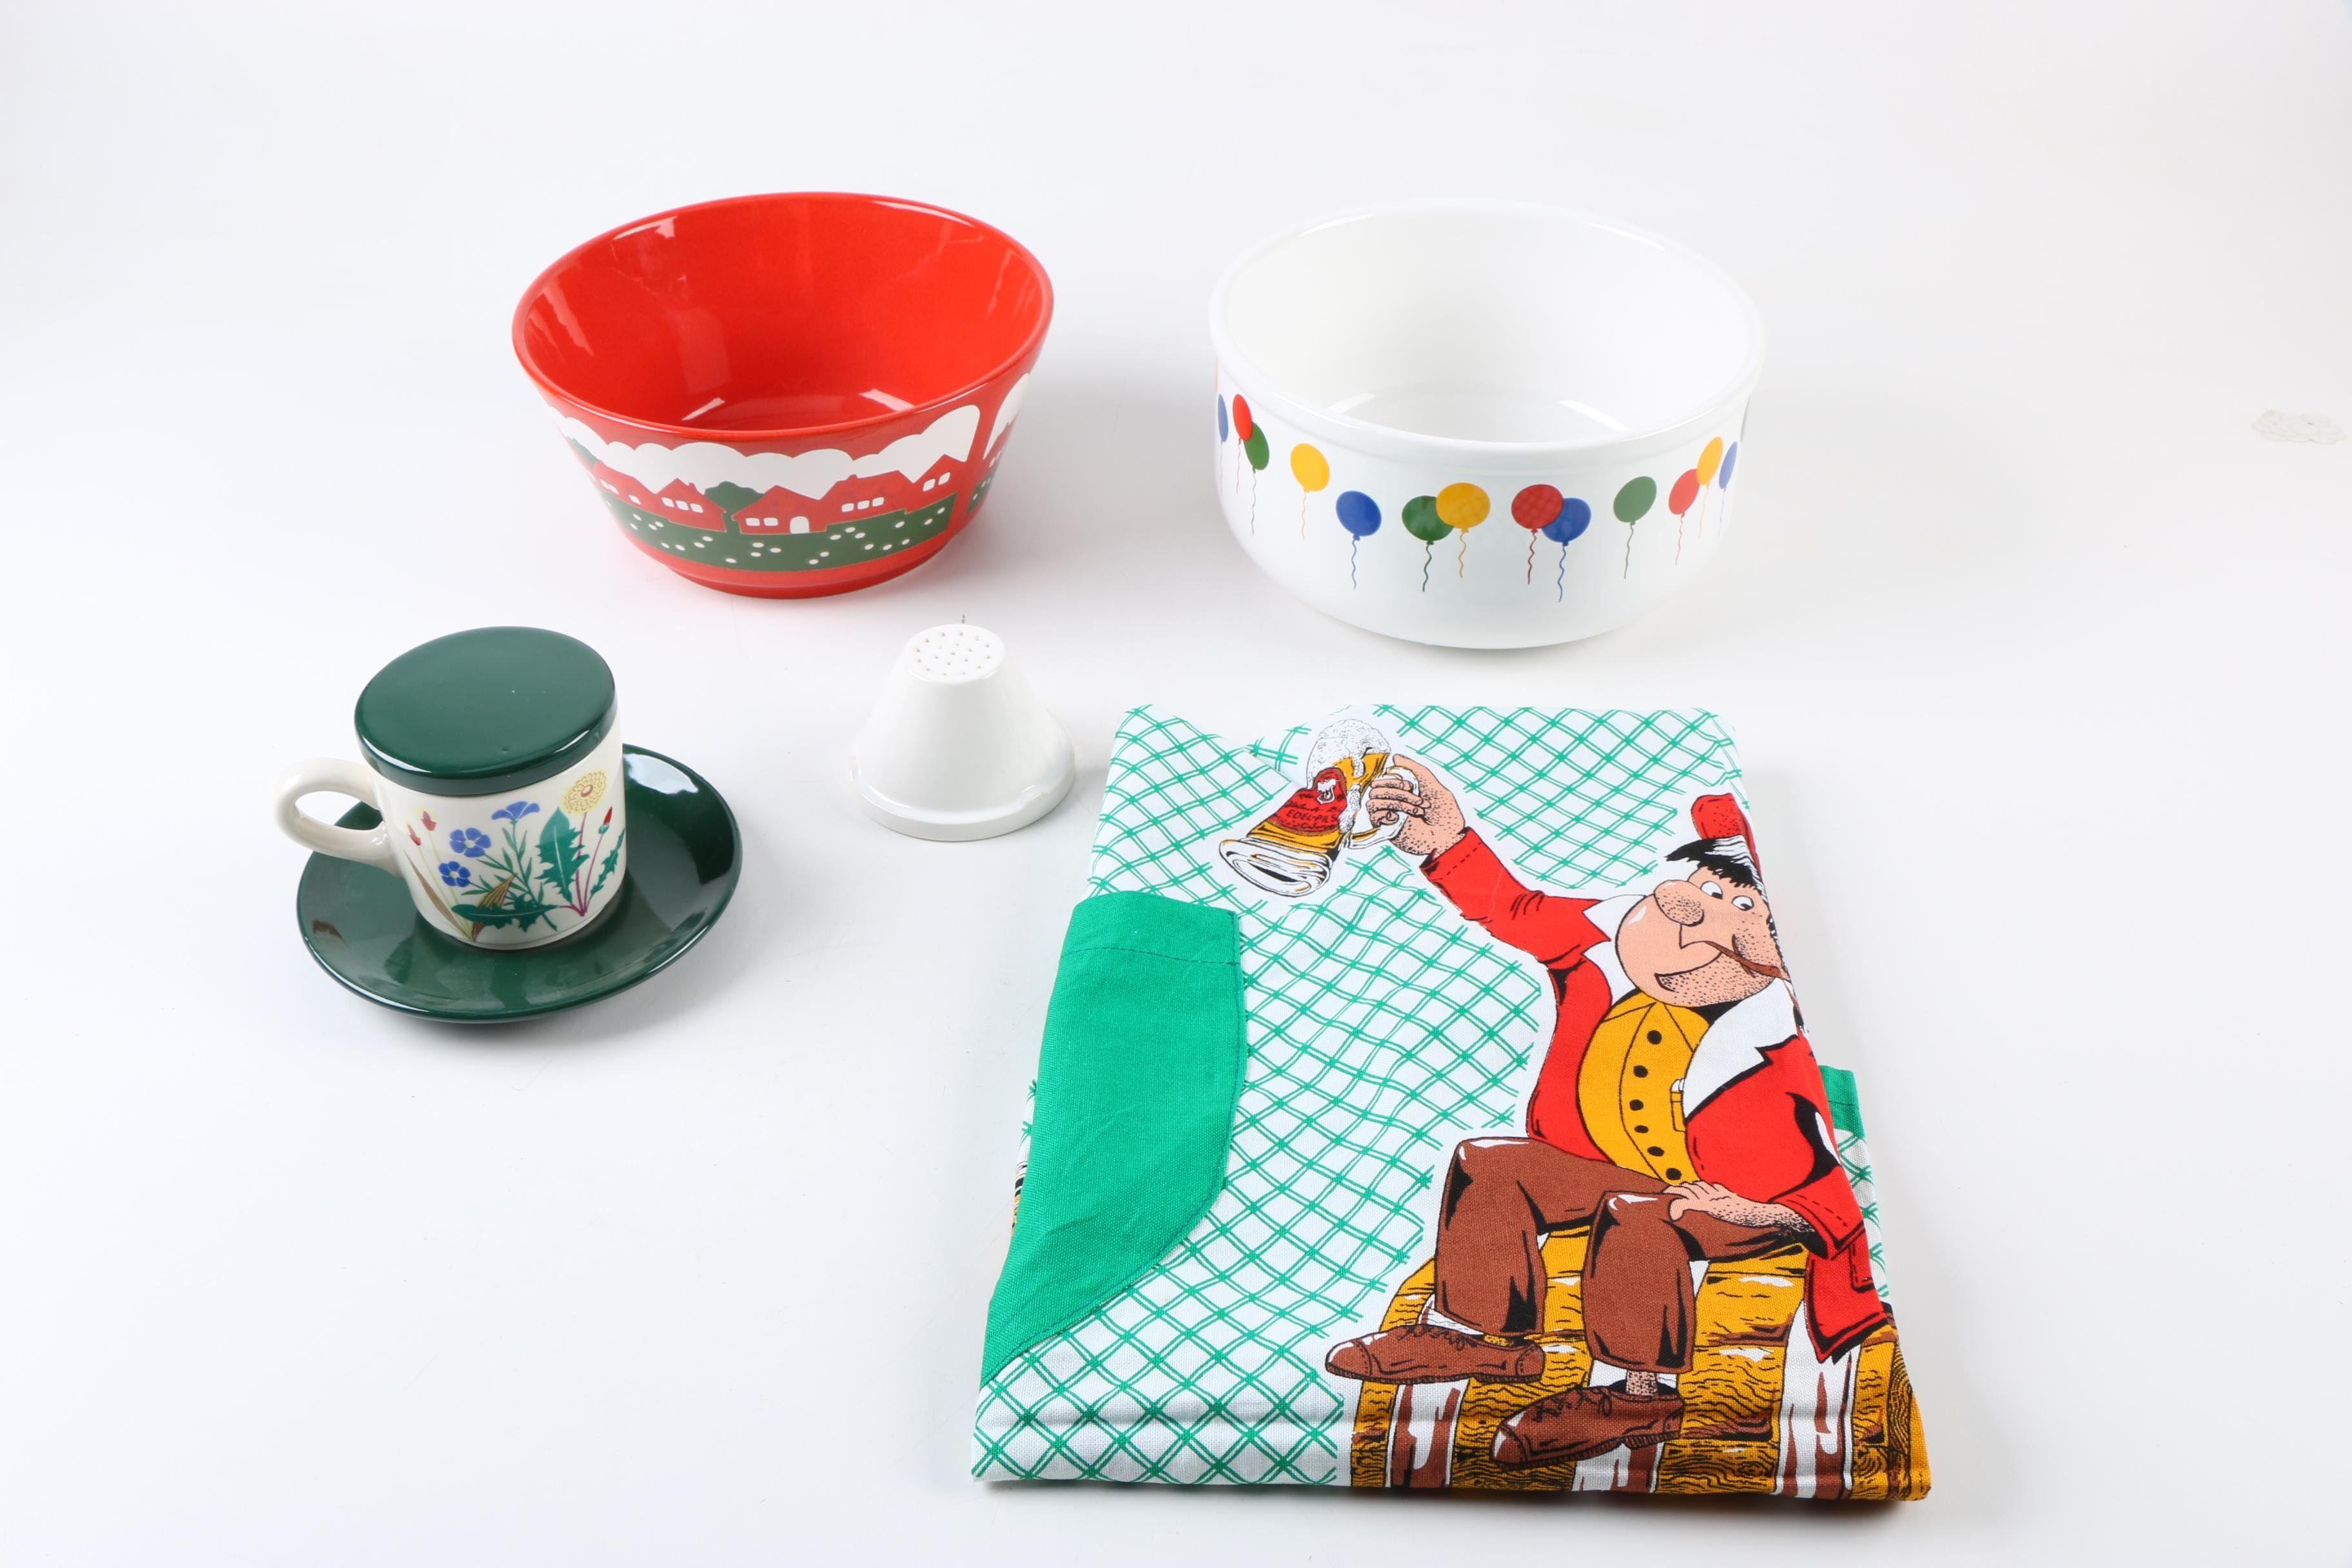 Waechtersbach Germany Holiday Tableware and Apron